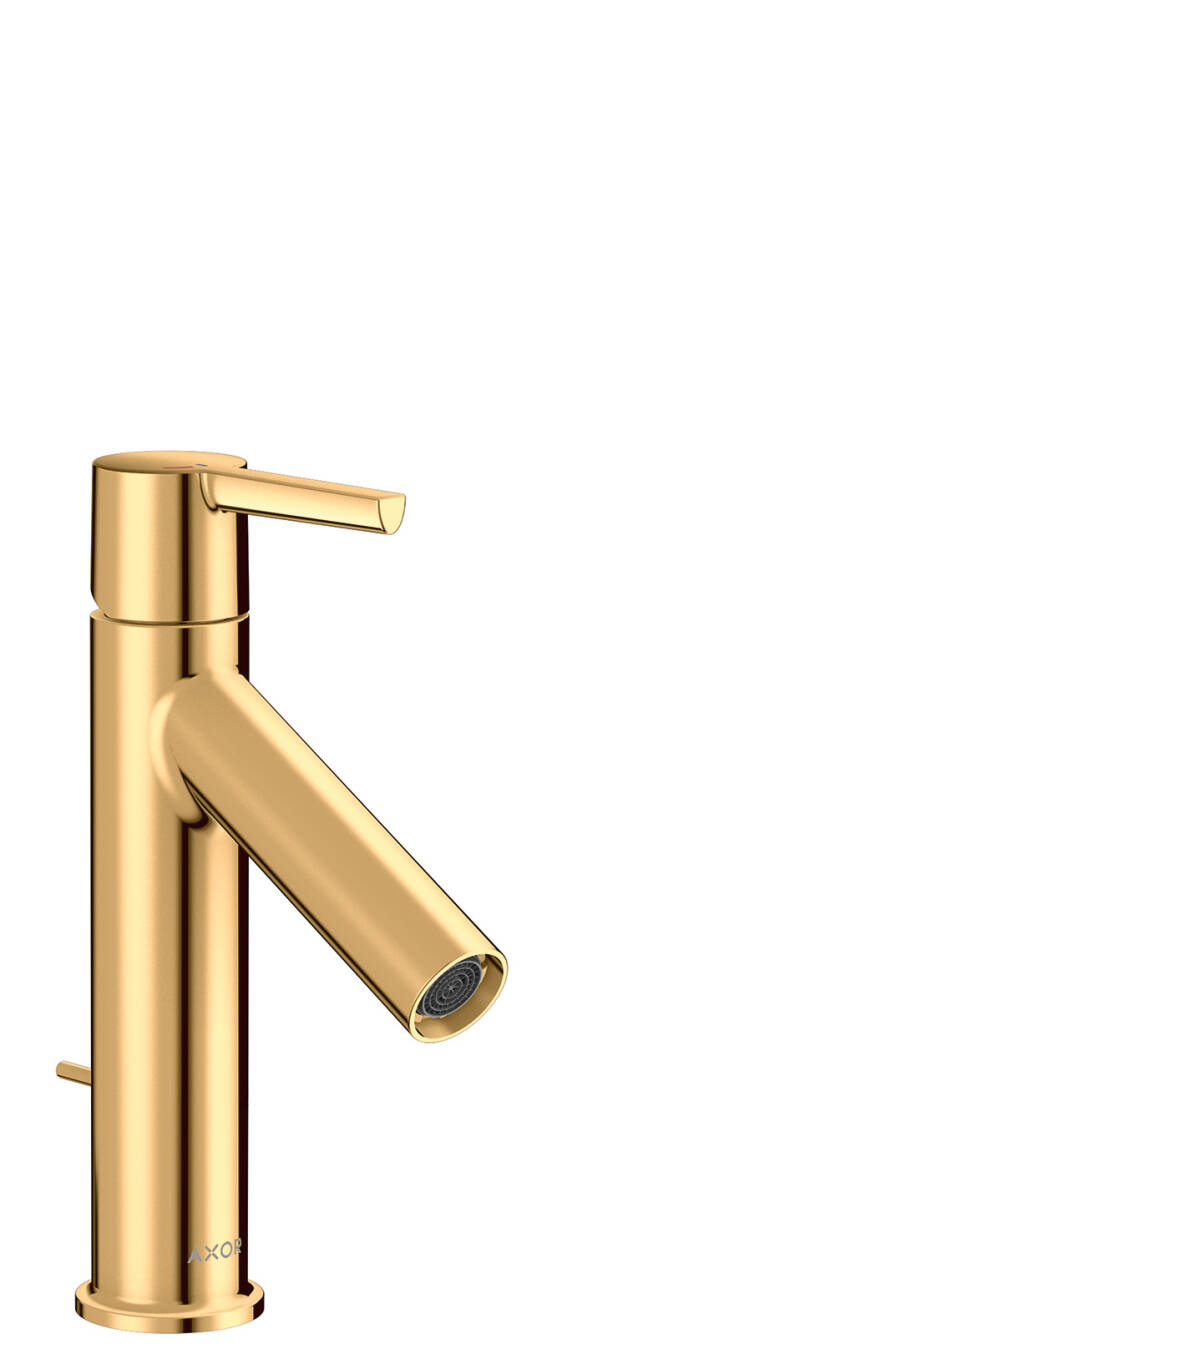 Single lever basin mixer 100 CoolStart with lever handle and pop-up waste set, Polished Brass, 10007930